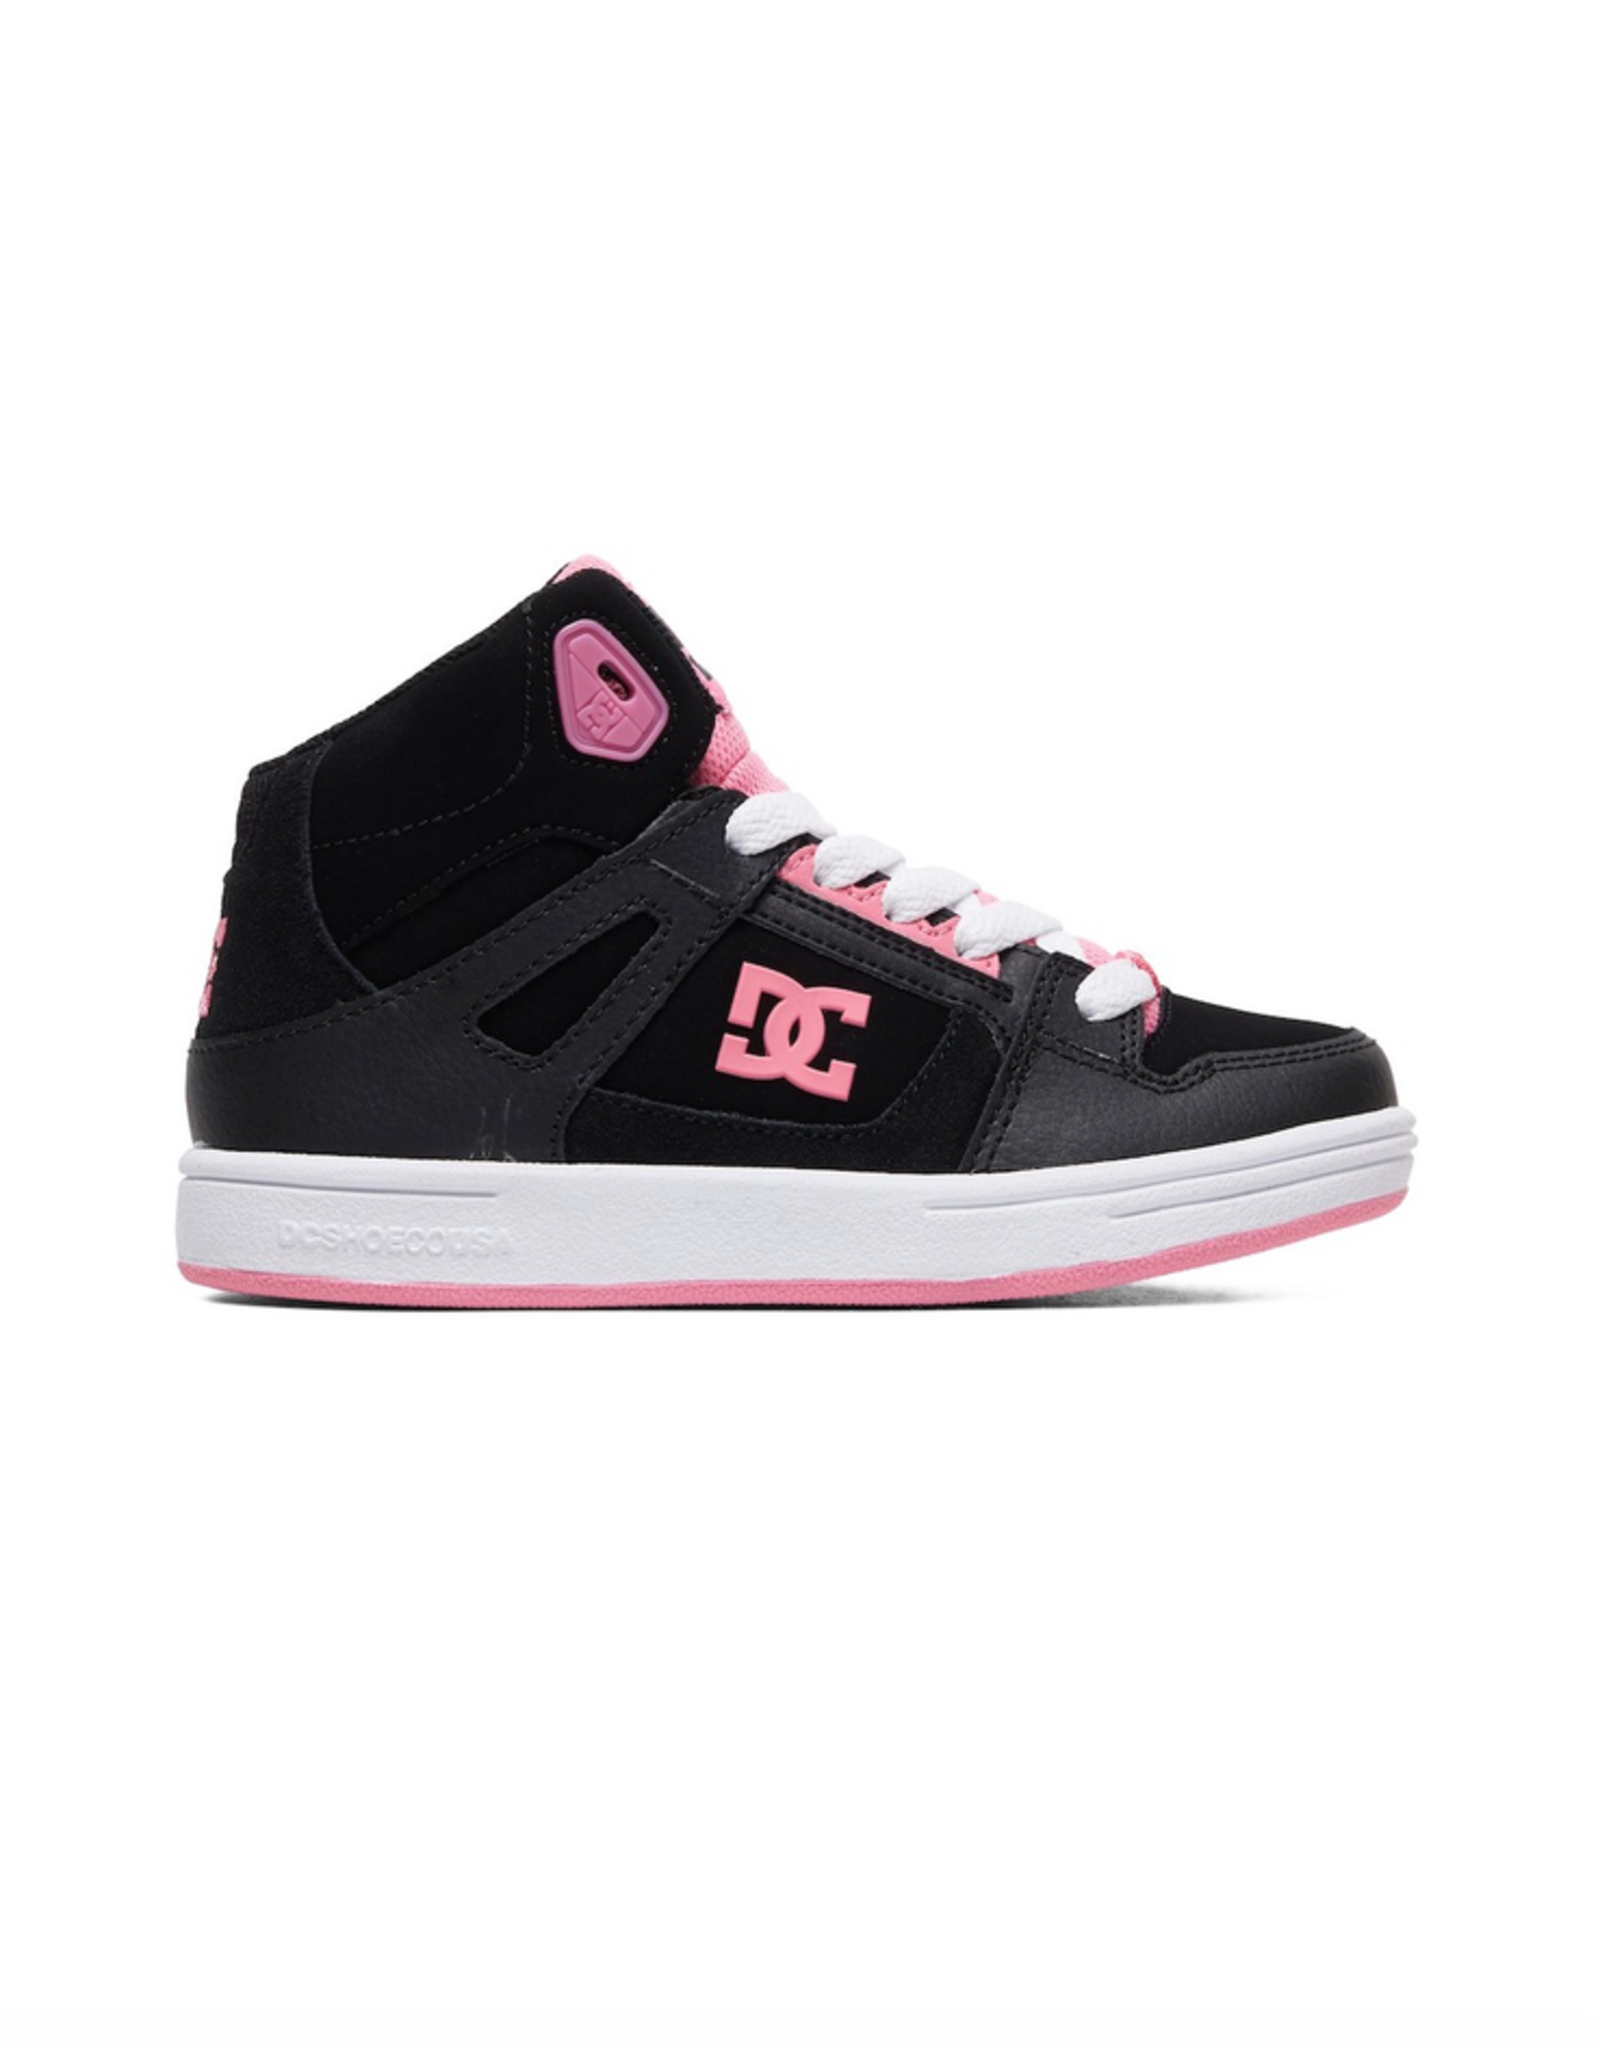 DC Shoes Kid's Pure Hi - High-Top Shoes in Black and Pink